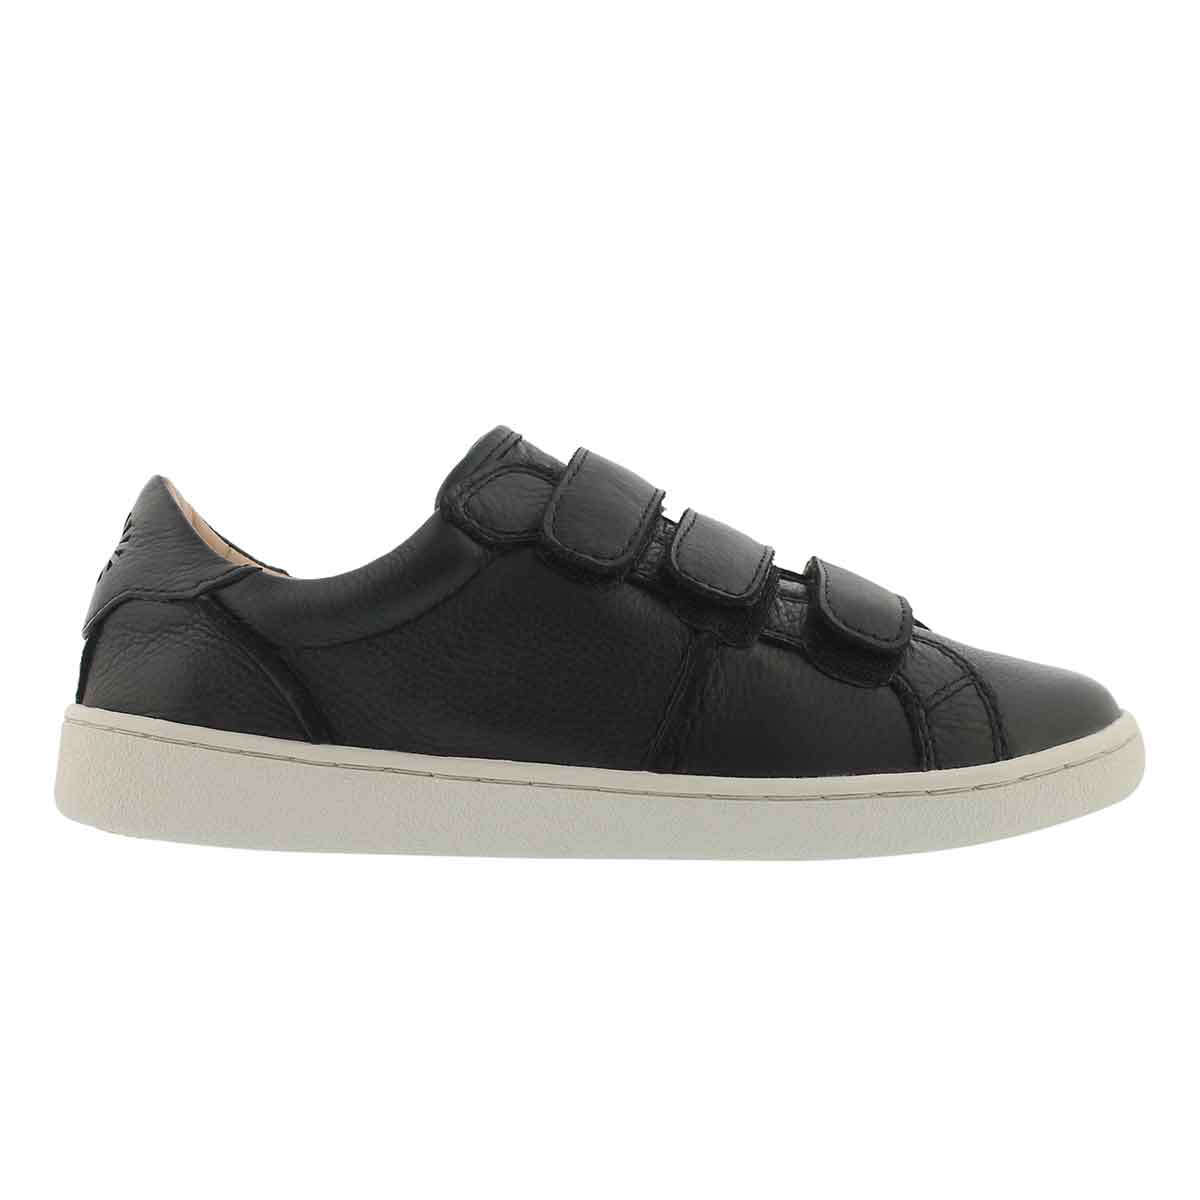 Lds Alix blk hook & loop casual sneaker